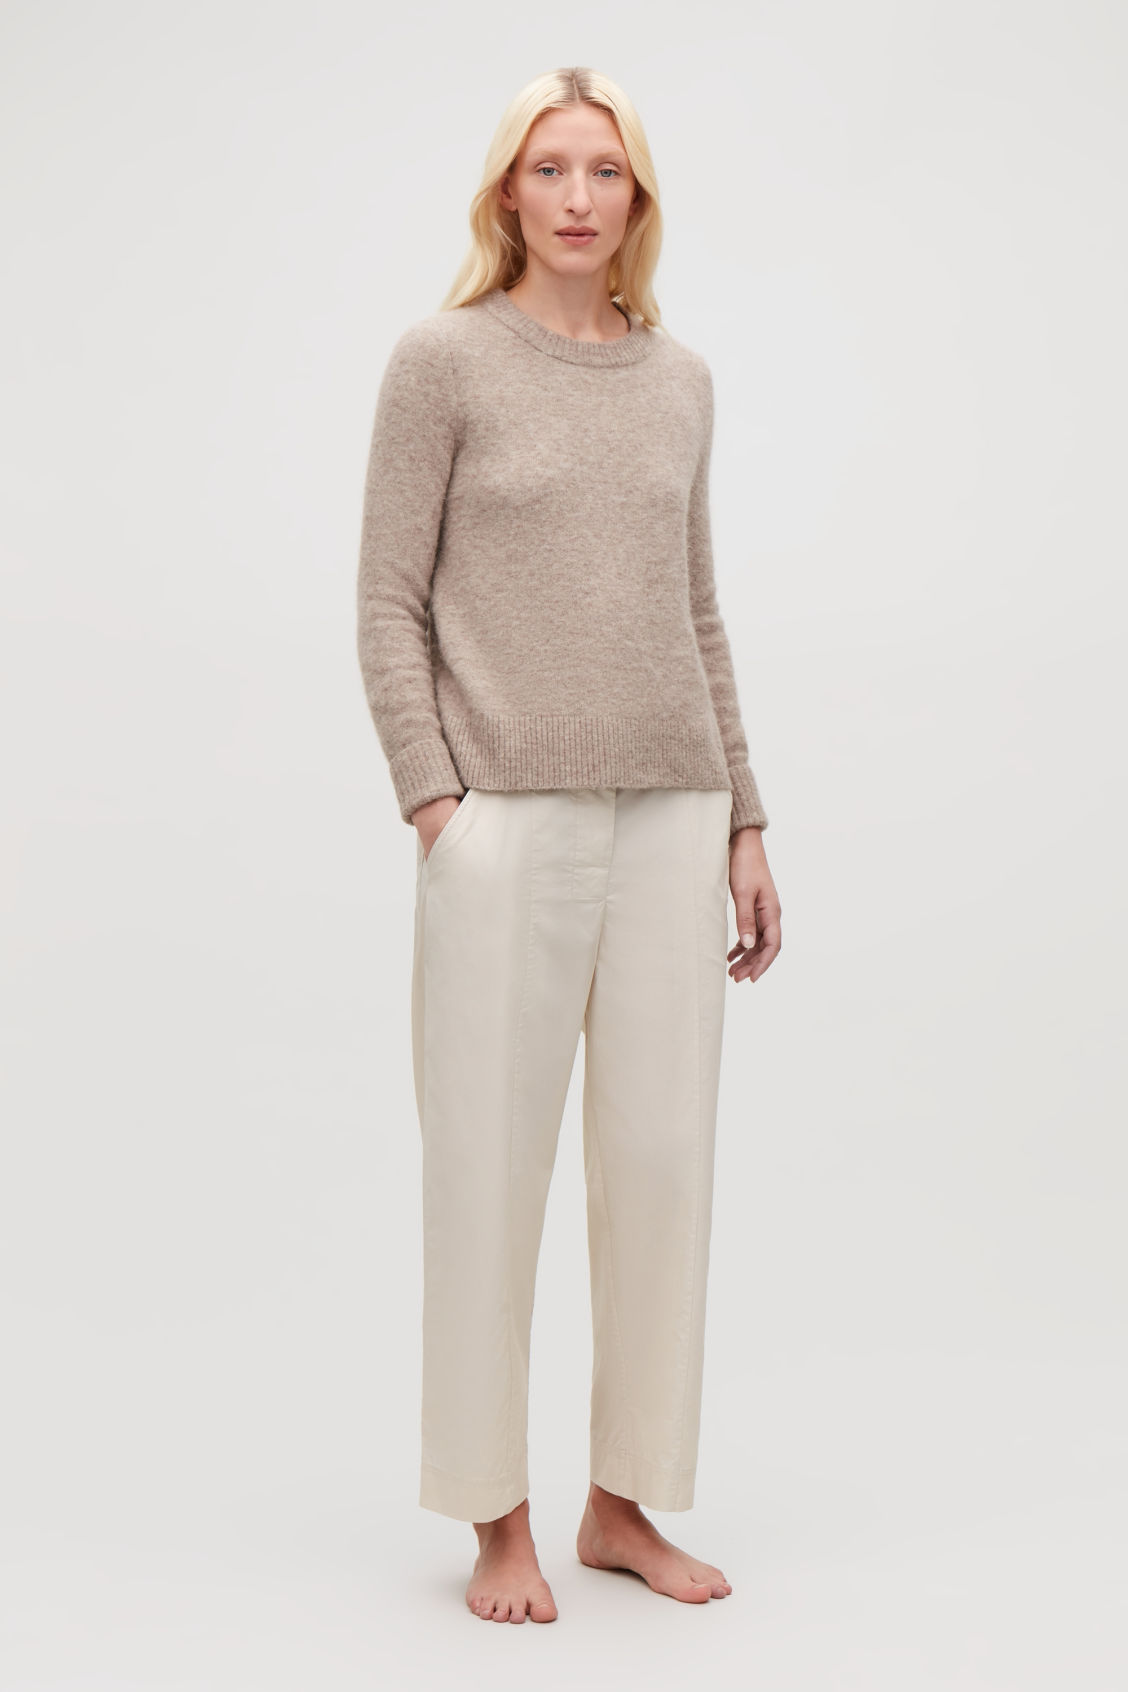 Detailed image of Cos trousers with folded waistband in beige